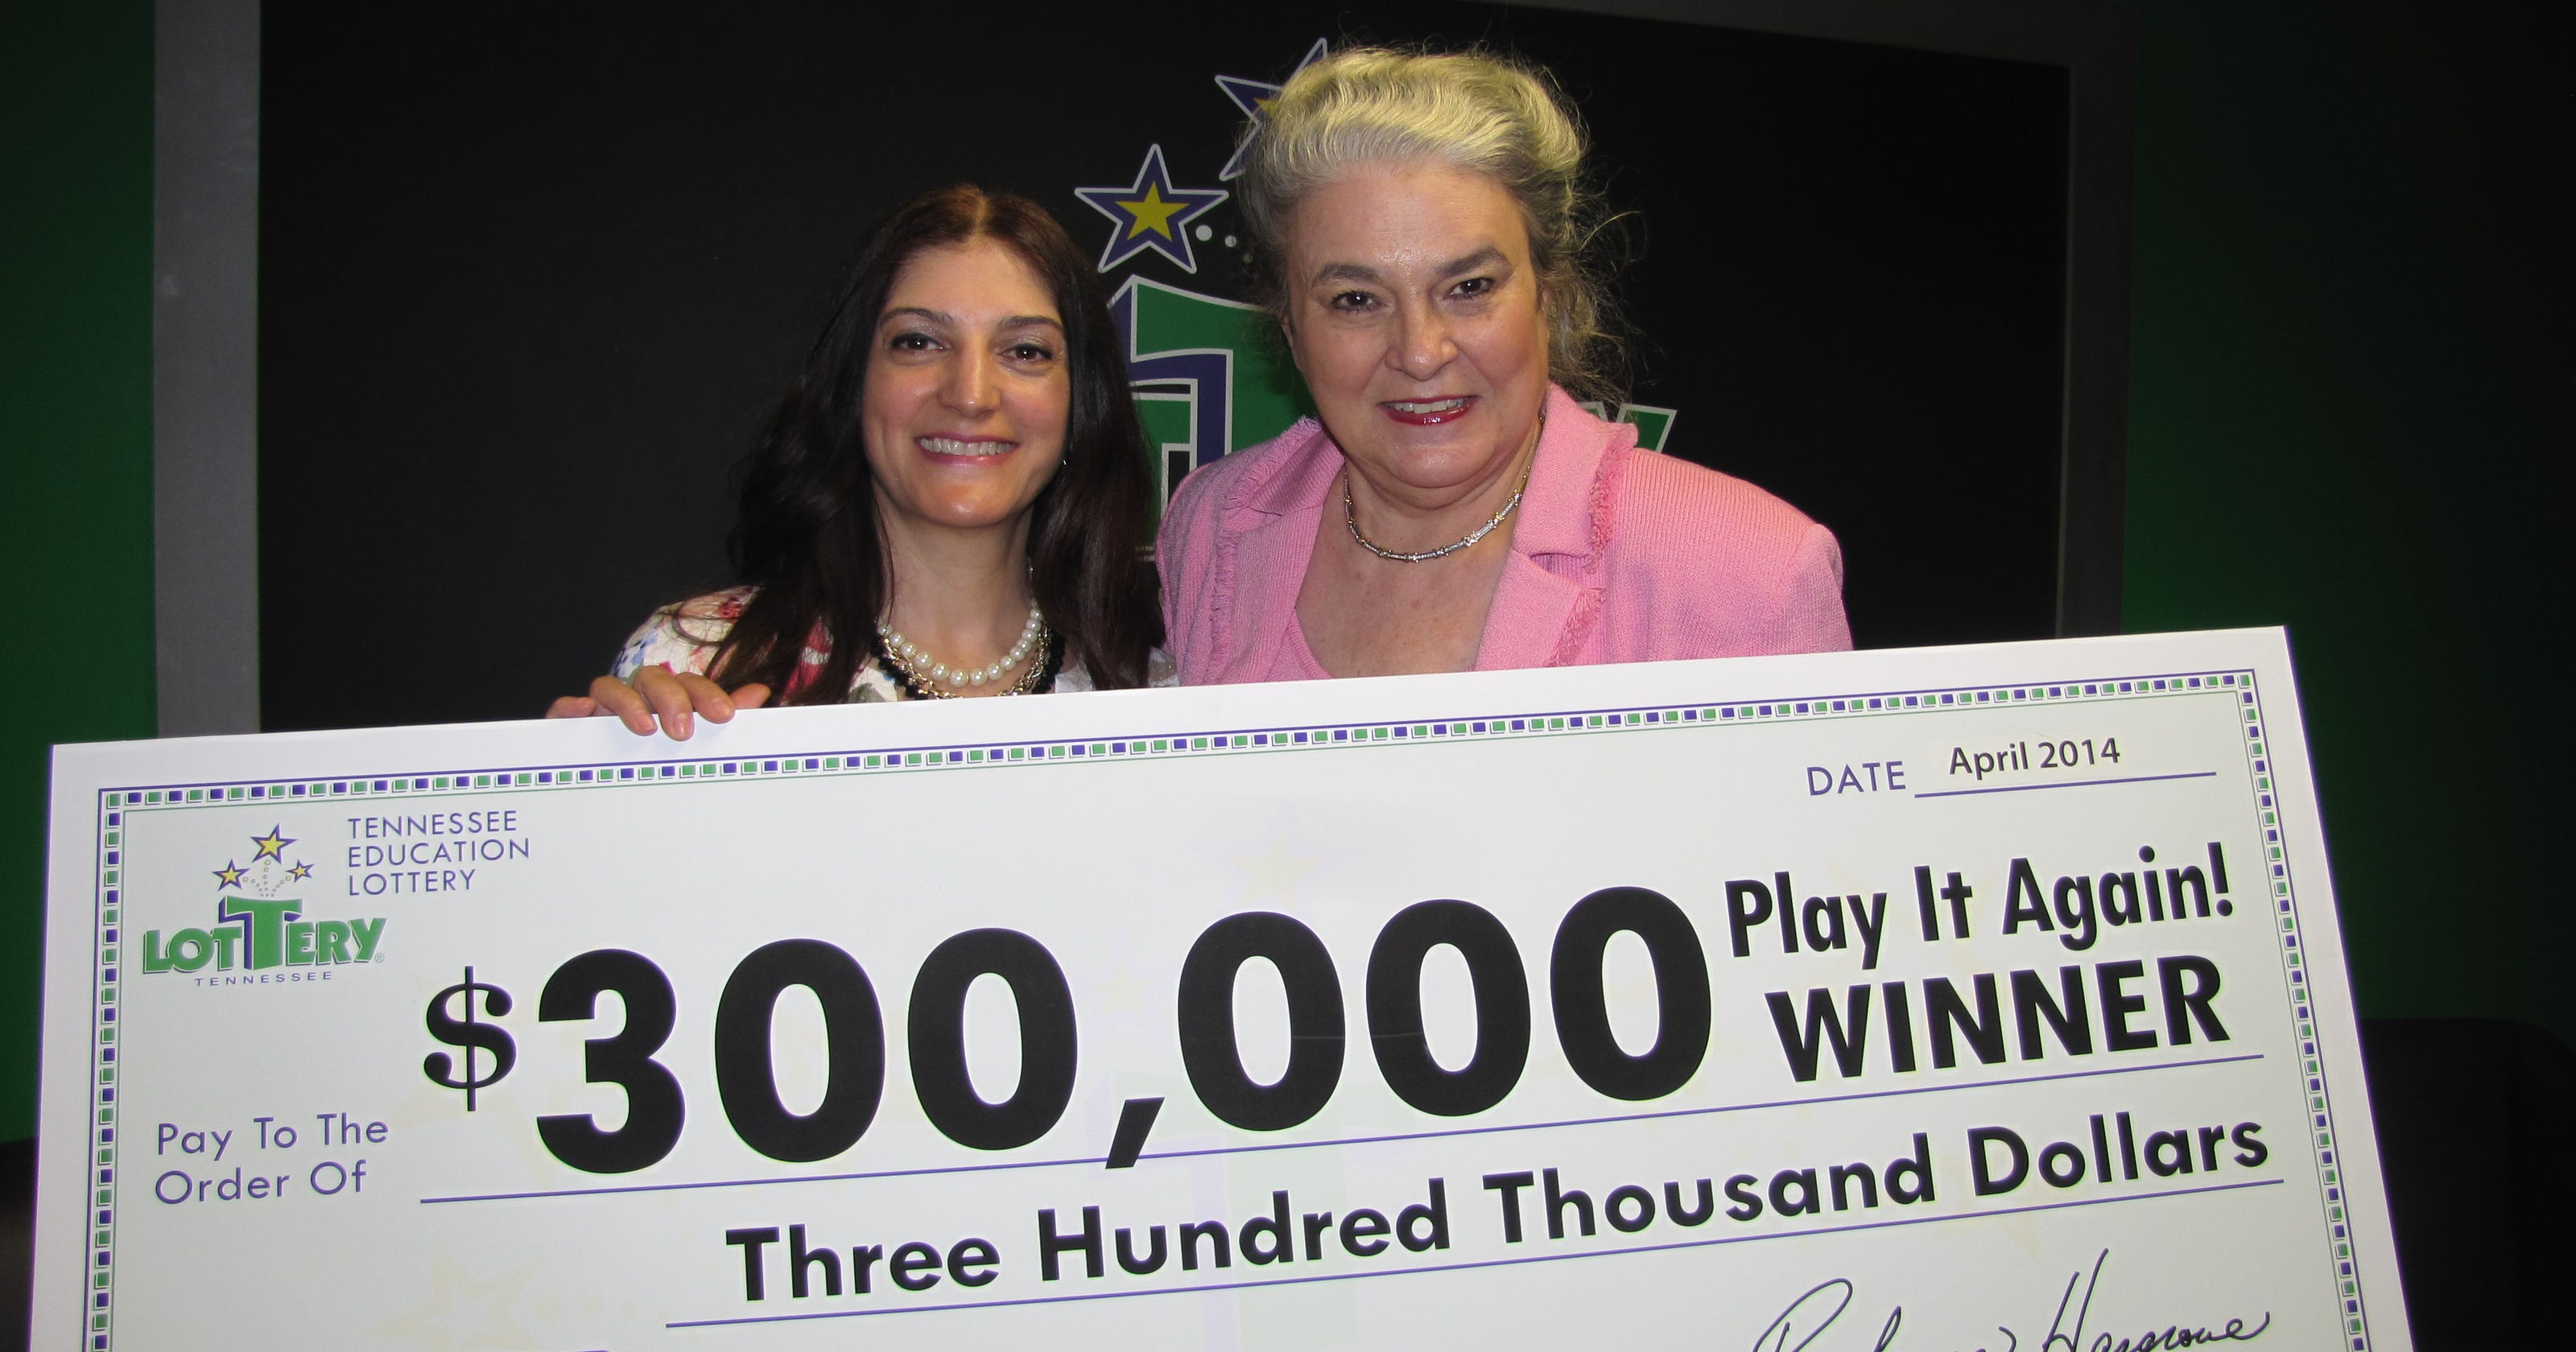 Losing lottery ticket pays off big time